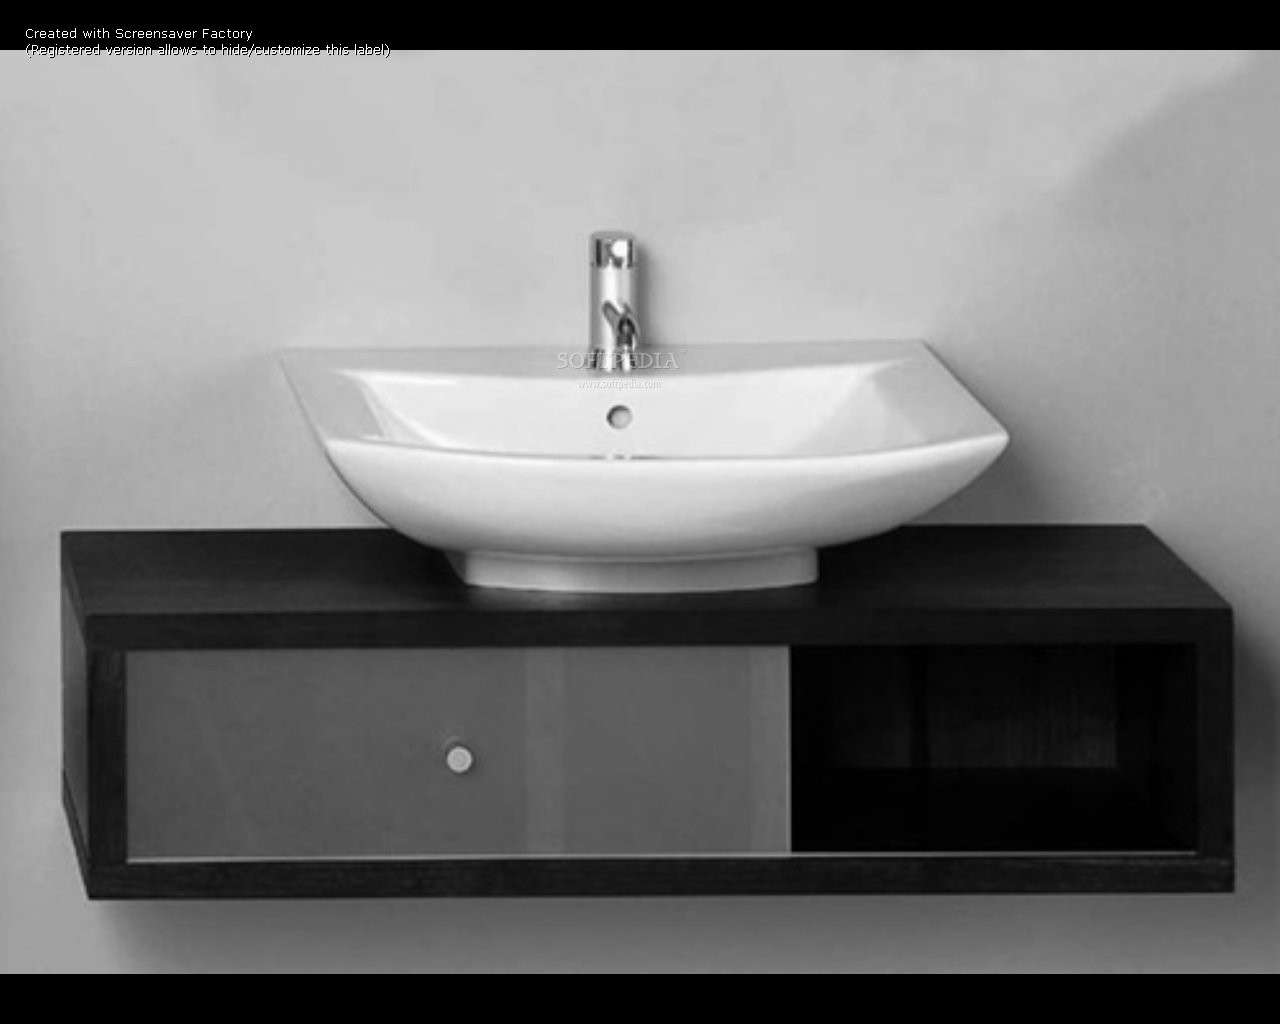 Best ideas about Small Bathroom Sink . Save or Pin small bathroom sinks 2017 Grasscloth Wallpaper Now.